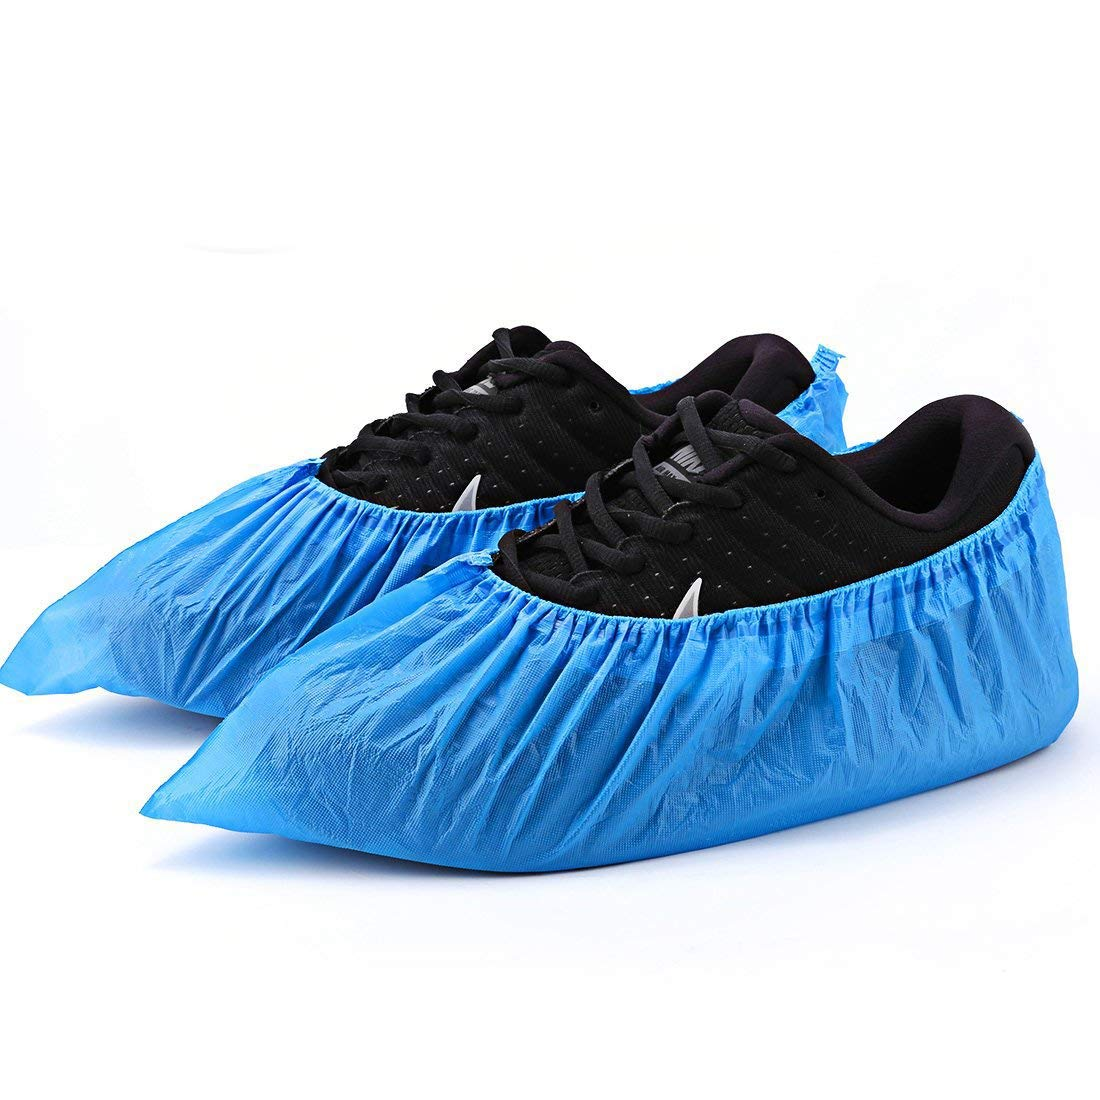 682afca485344 Shoe Covers Disposable -100 Pack(50 Pairs) Disposable Shoe & Boot Covers  Waterproof Slip Resistant Shoe Booties (Large Size - up to US Men's 11 & US  ...